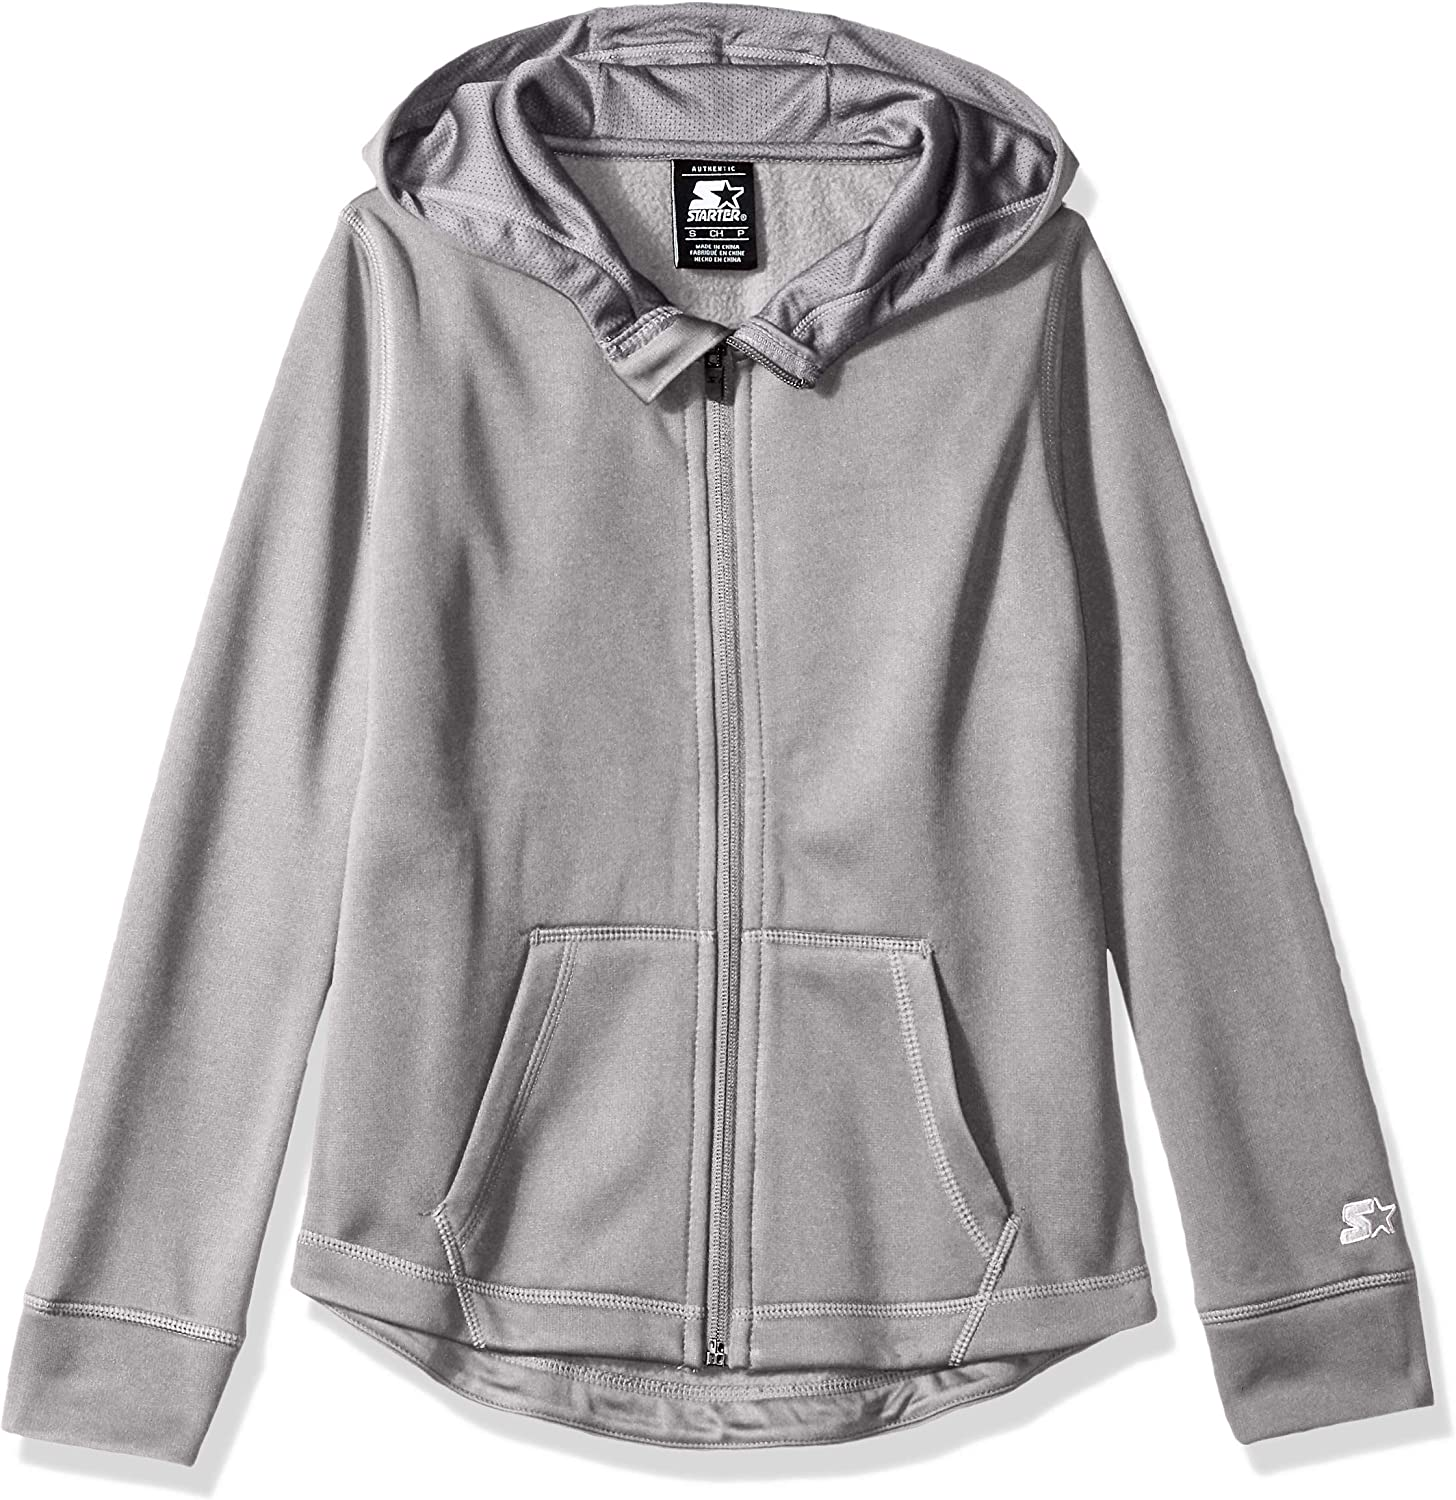 Exclusive Starter Girls AUTHEN-TECH Zip-Up Hoodie